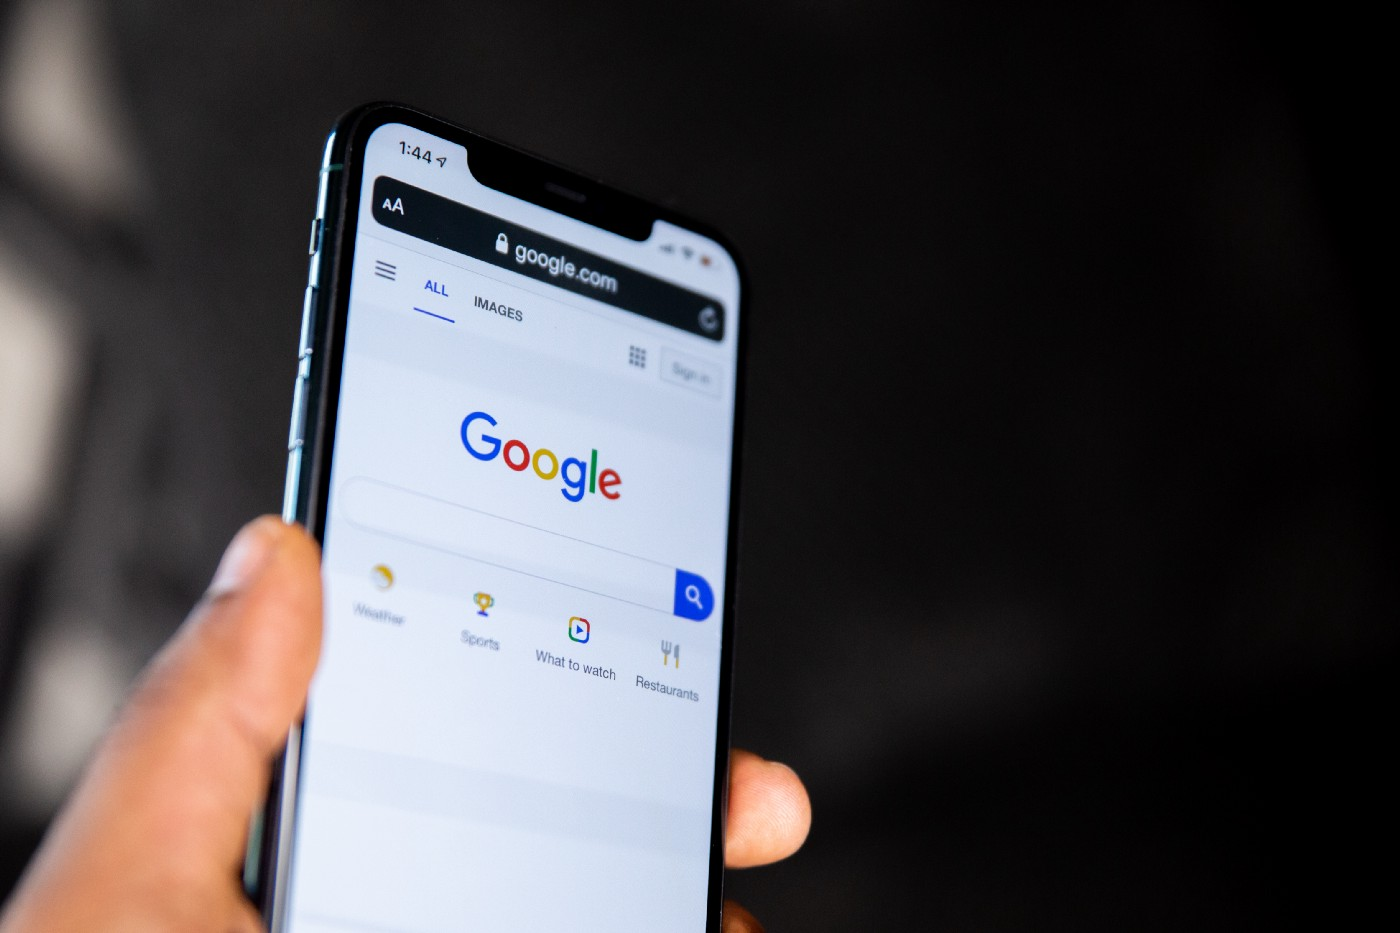 mobile phone showing Google search screen